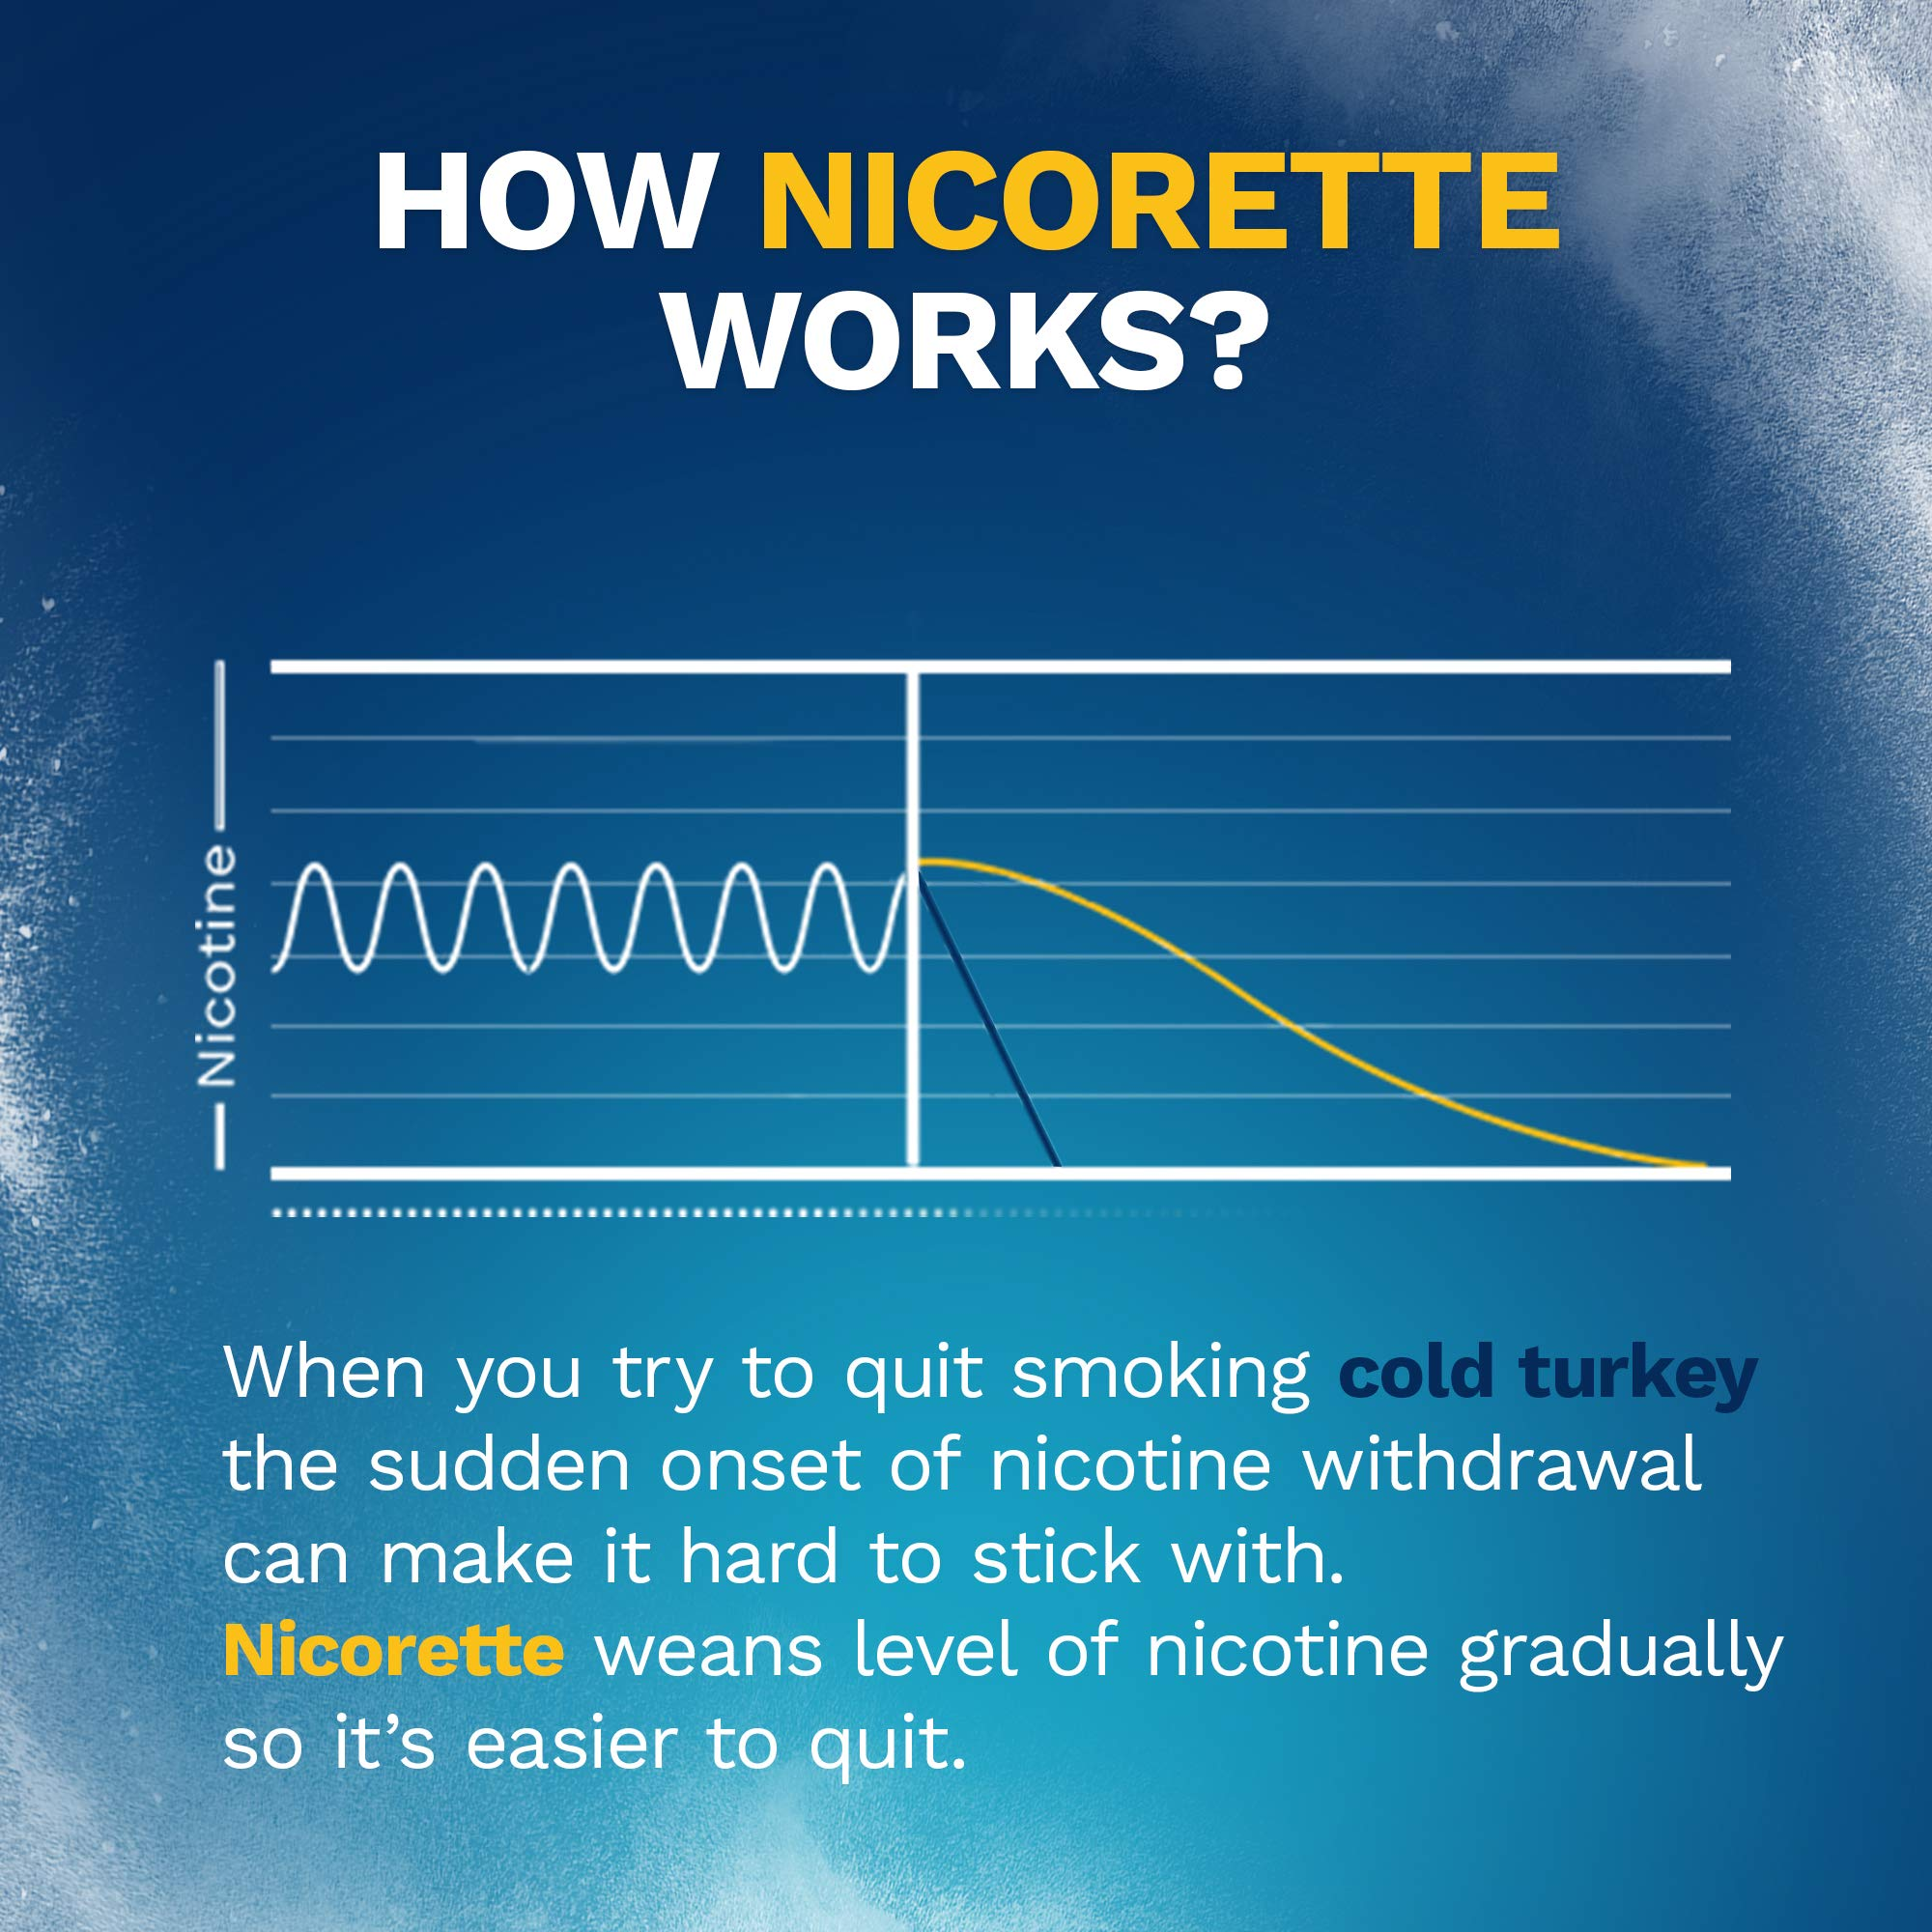 Nicorette 2mg Nicotine Gum to Quit Smoking - White Ice Mint Flavored Stop Smoking Aid, 20 Count